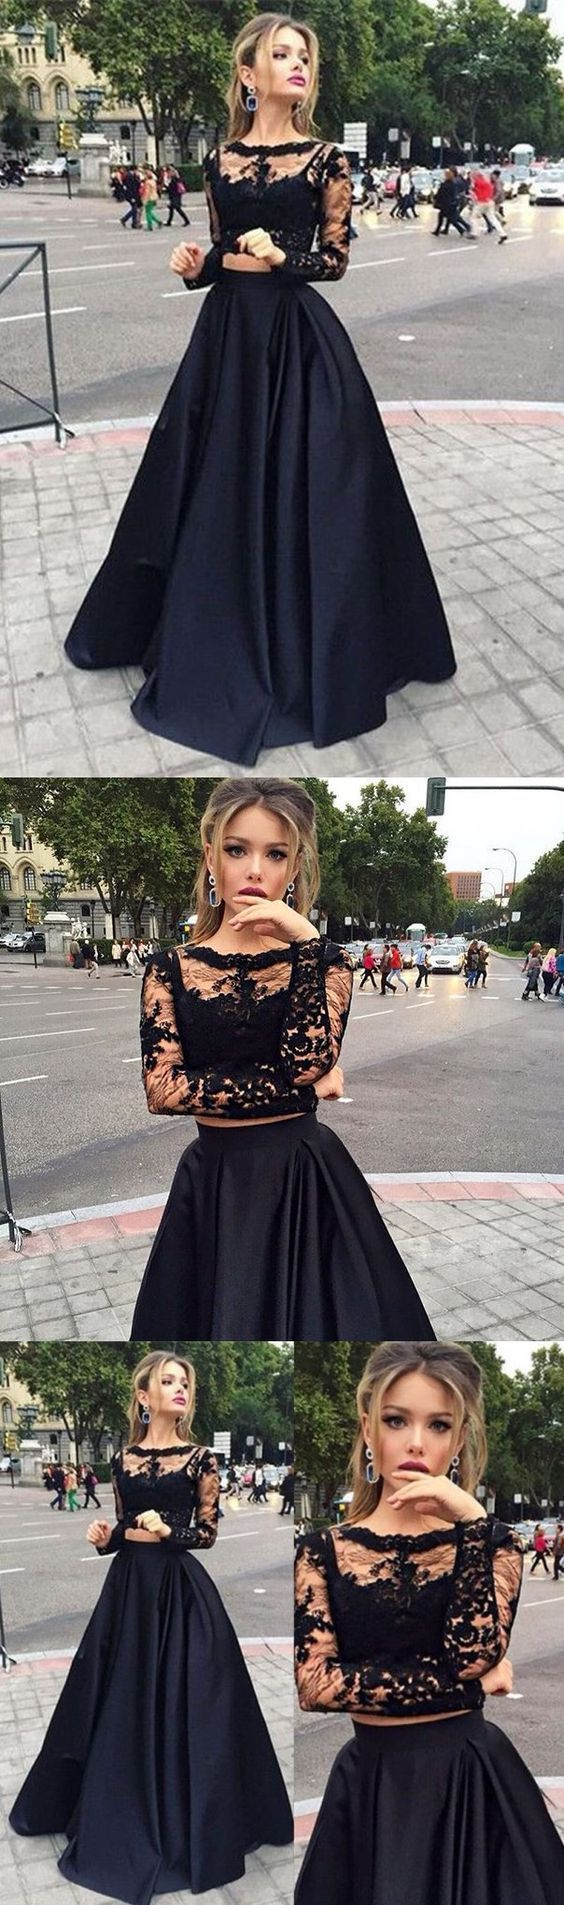 Bateau Long Sleeves eleagnt prom dresses, Floor-Length Black fashion party dresses, Two Piece evening Dress with Lace